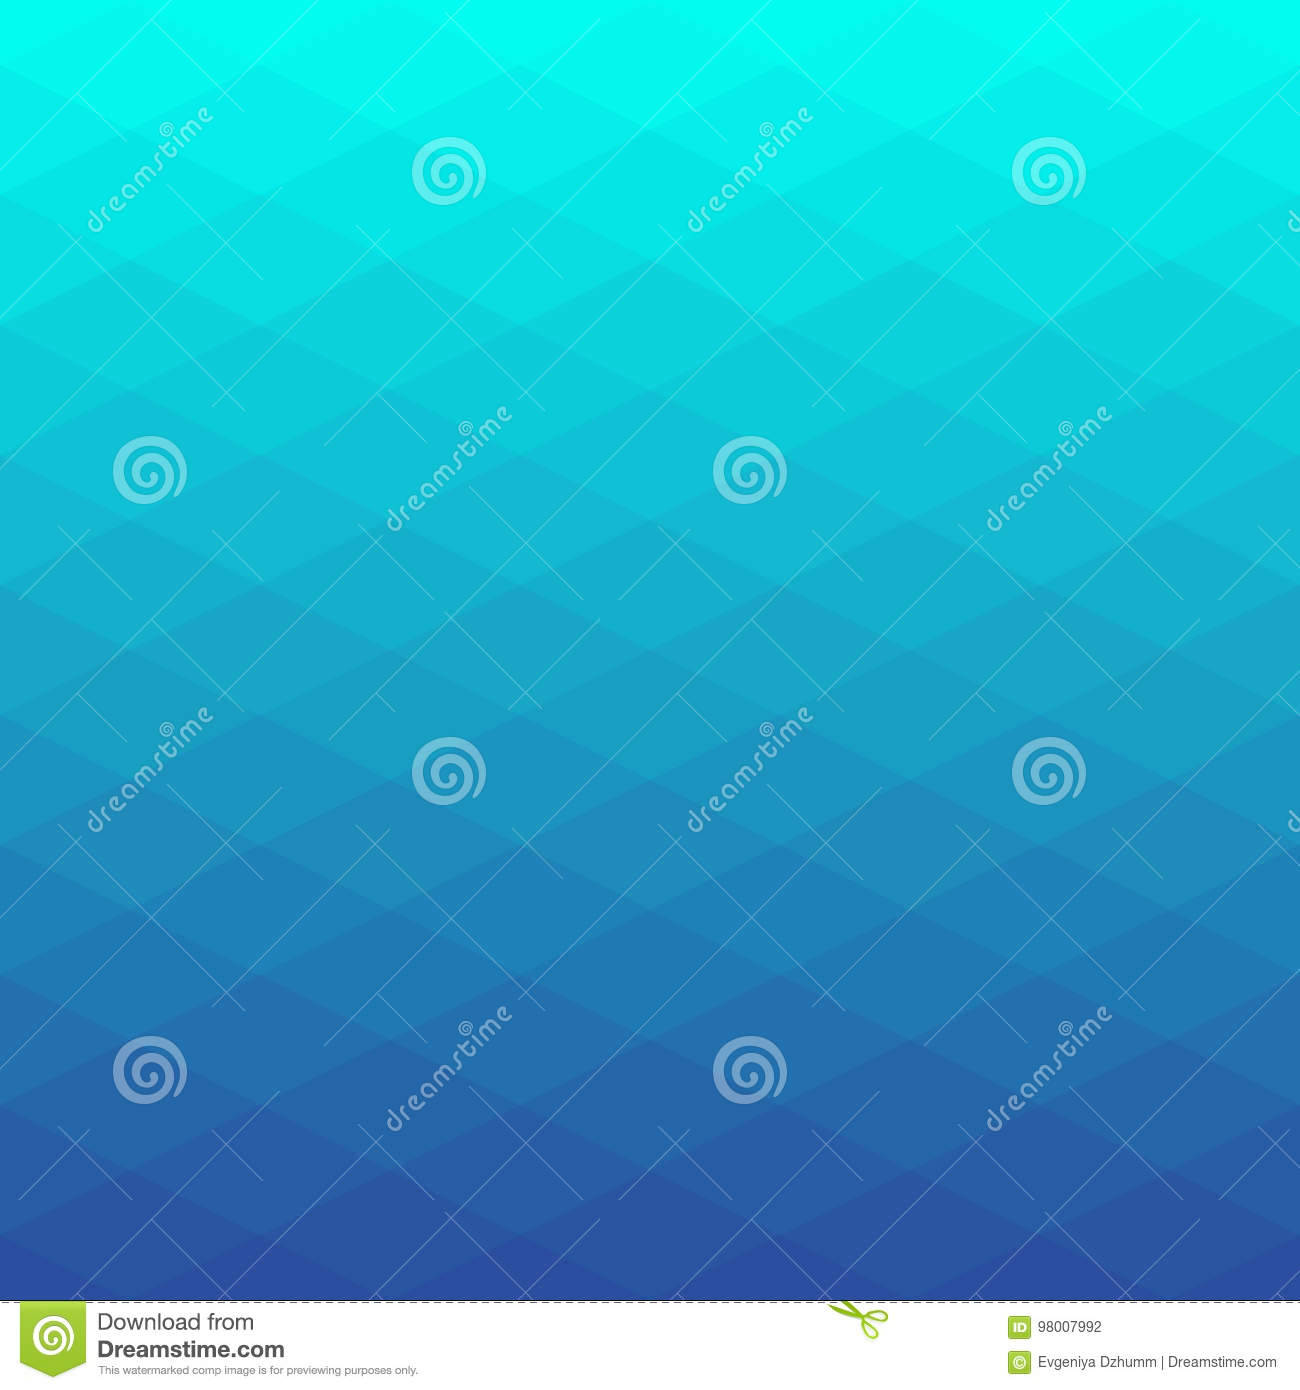 Abstract poligonal background of rhombus. Geometry triangle background with gradient colors.